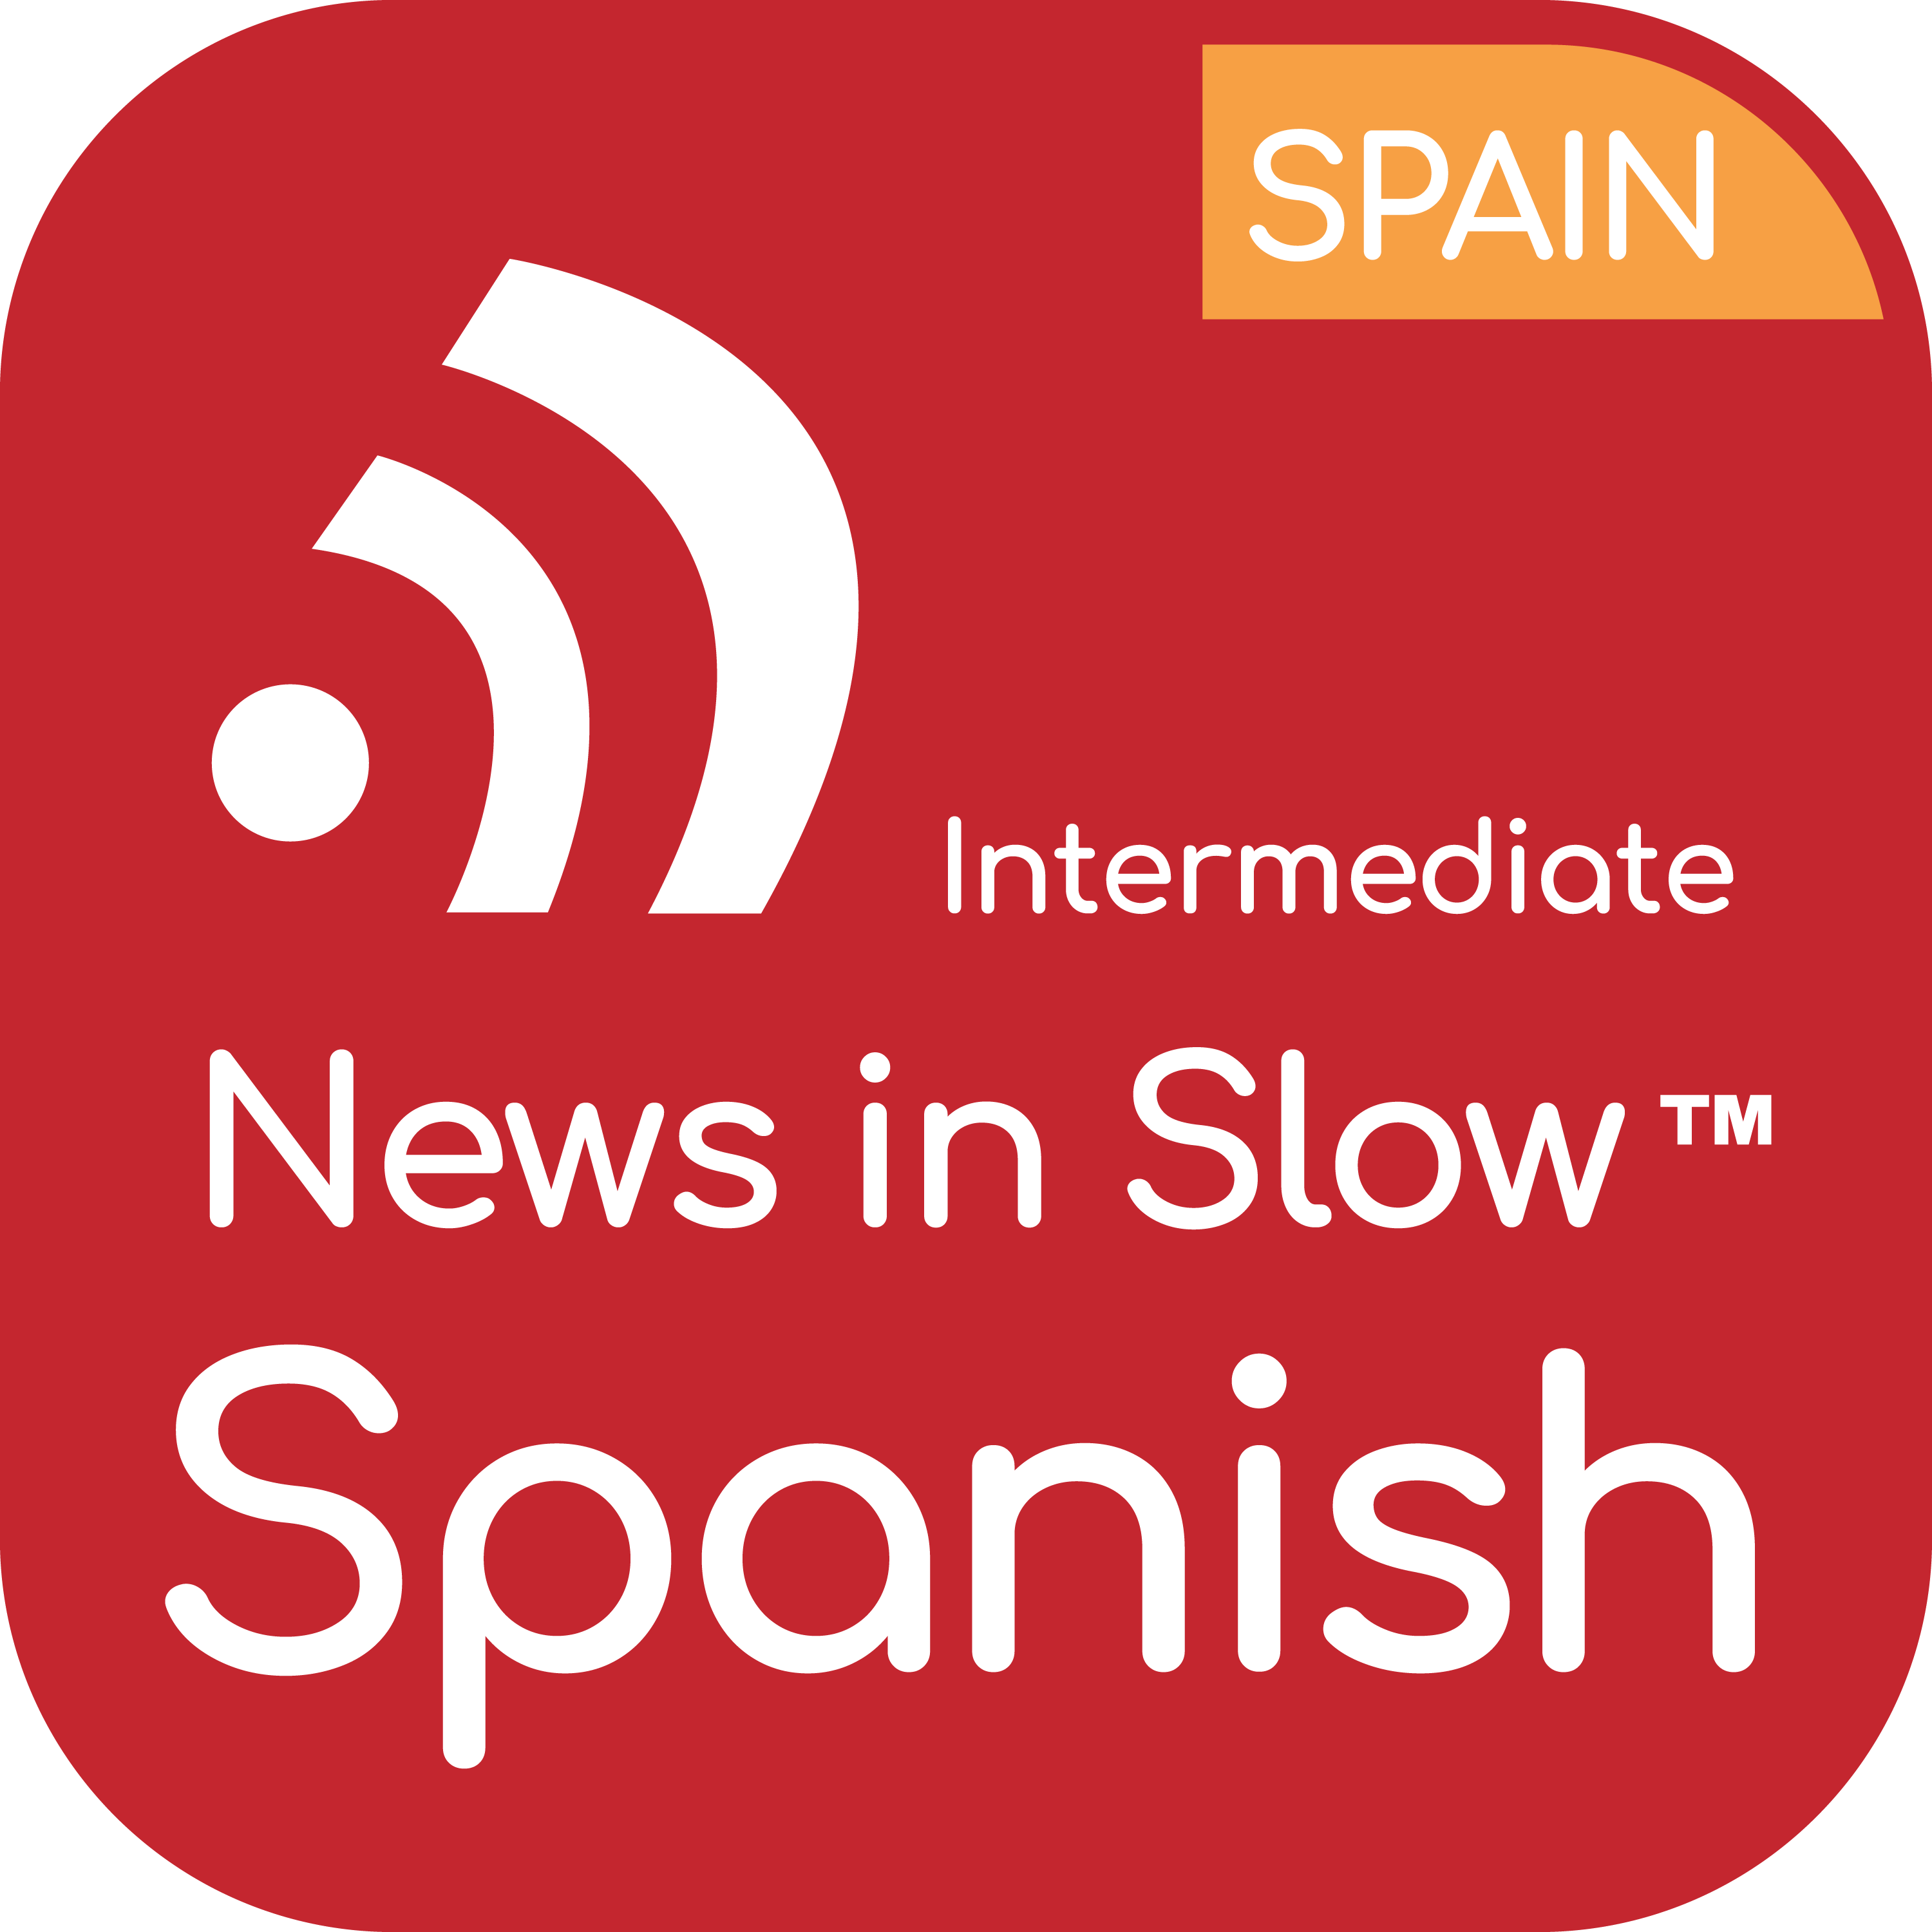 News in Slow Spanish - #614 - Learn Spanish through Current Events